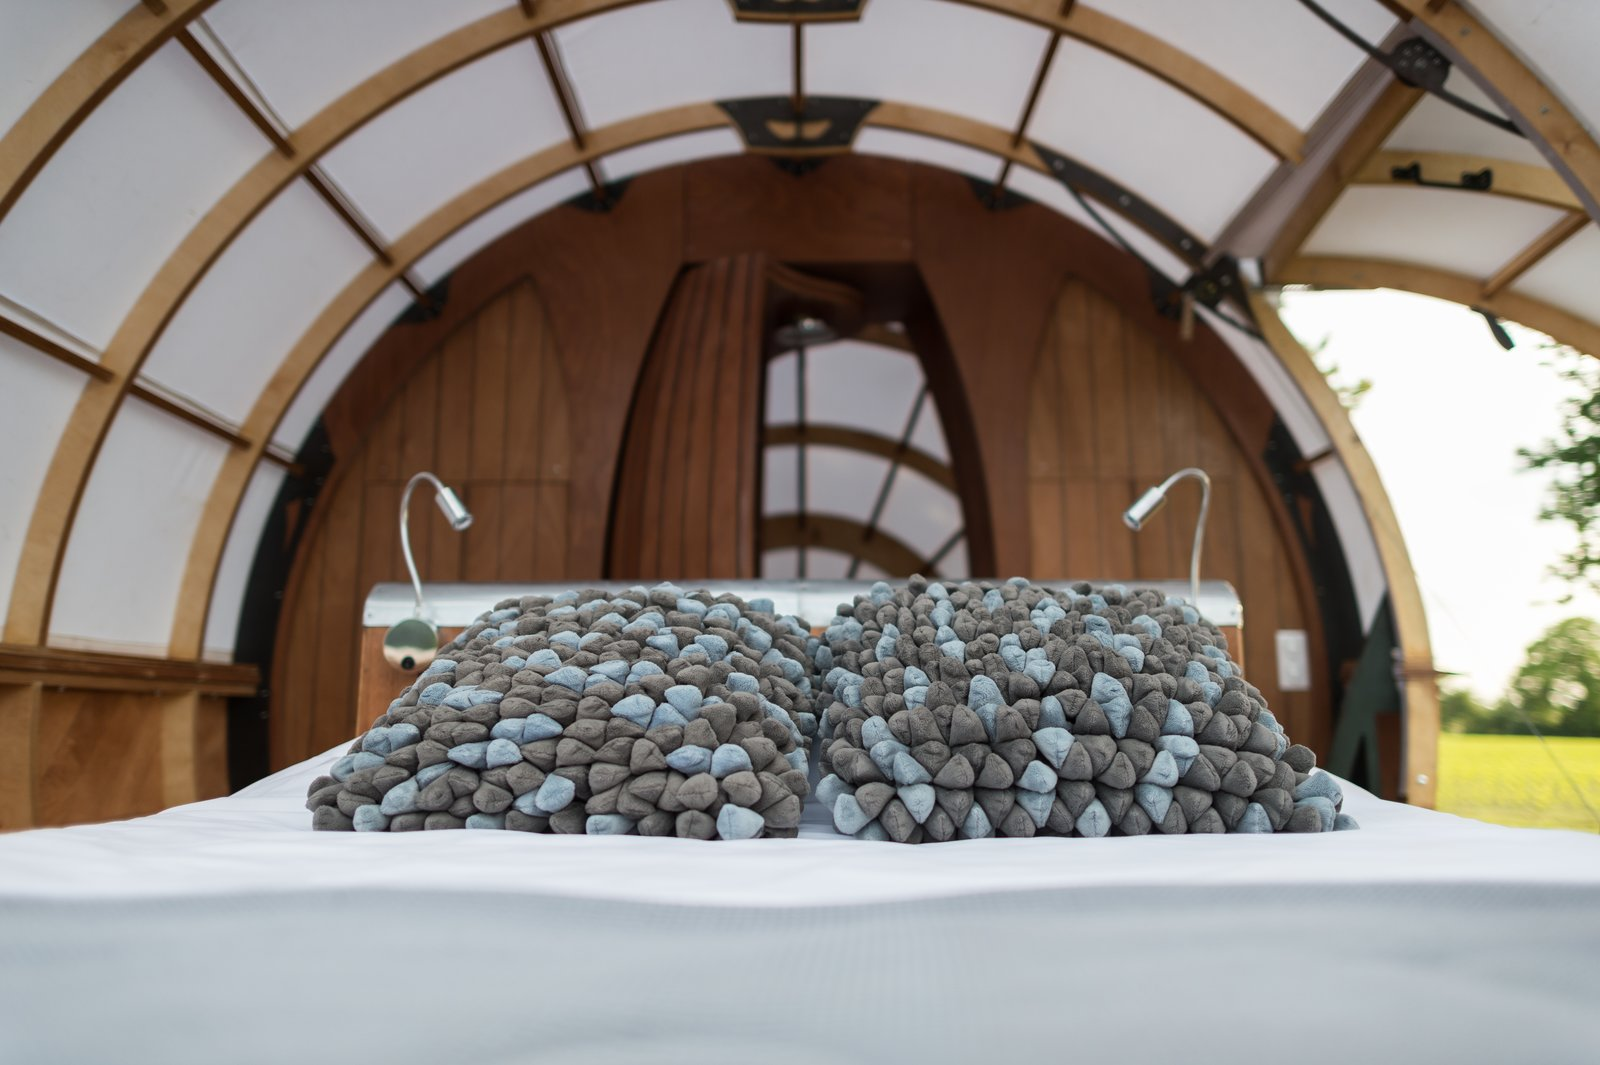 Bedroom, Bed, and Accent Lighting  Photo 3 of 7 in A Fantastic Egg-Shaped Camping Pod Along the Loire Estuary